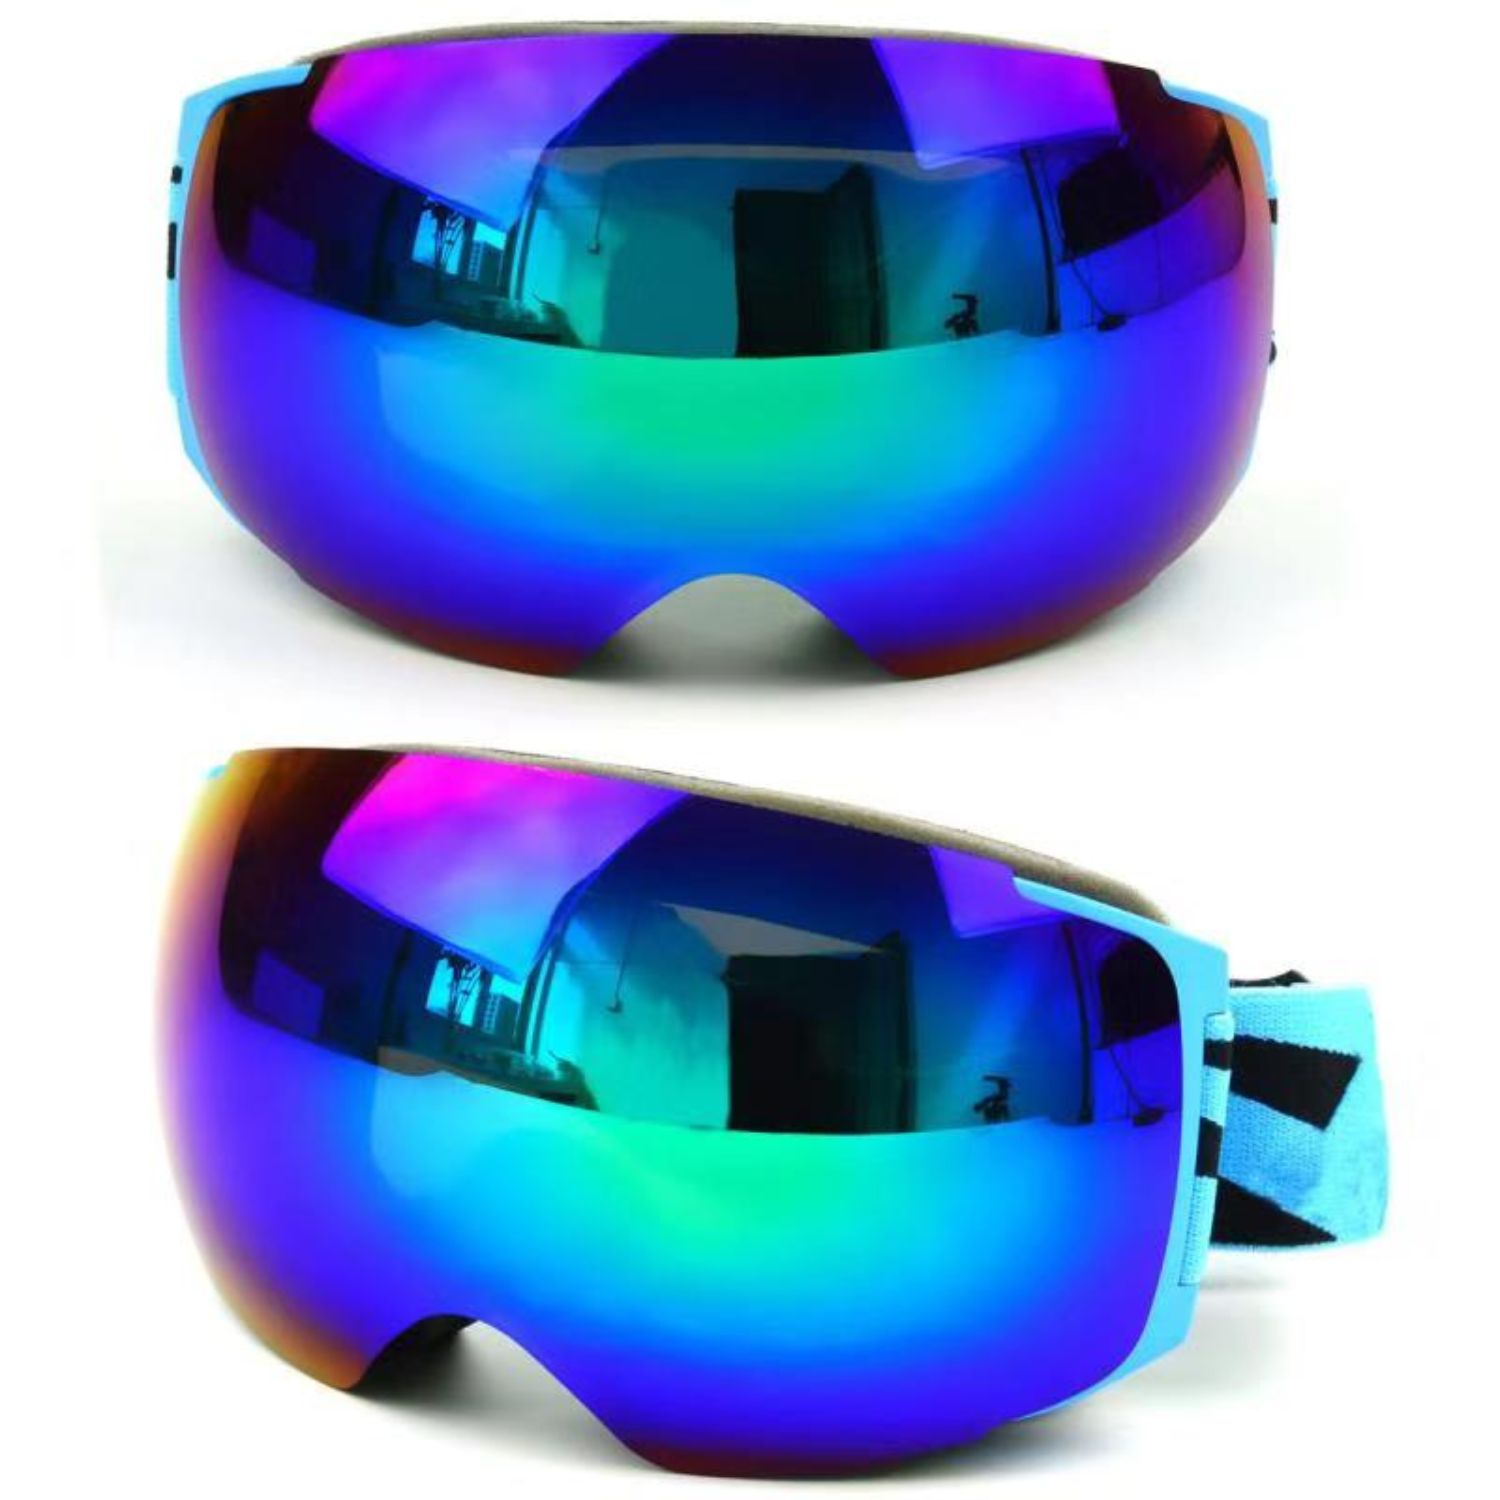 SG02 - Outdoor Ski Snowboard Goggles for Men and Women UV Protection - Iris Fashion Inc. | Wholesale Sunglasses and Glasses